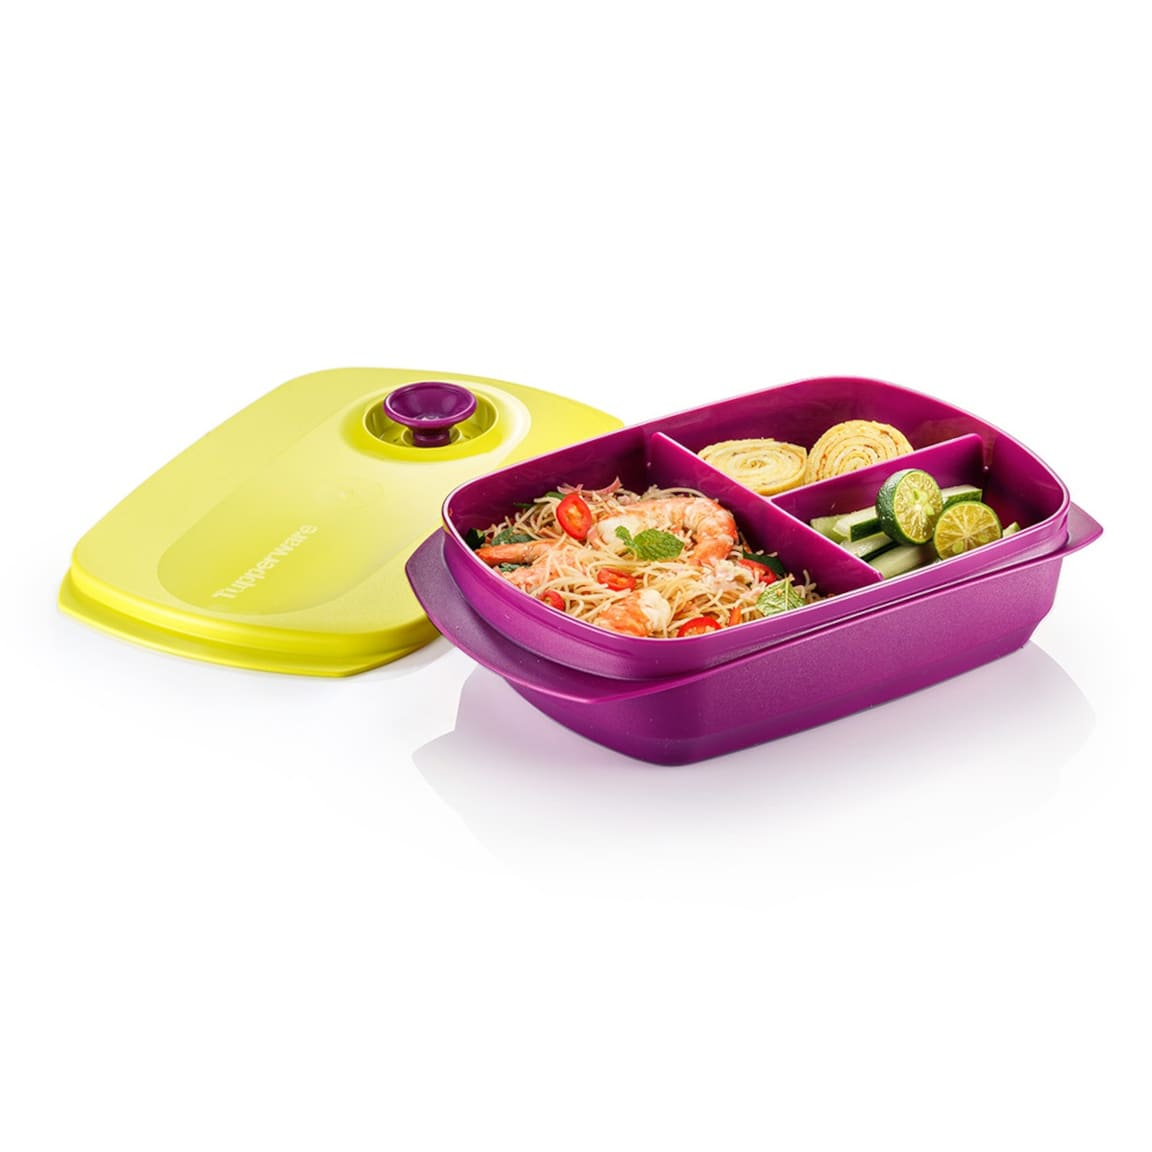 Reheatable Divided Lunch Box (1) 1.0L